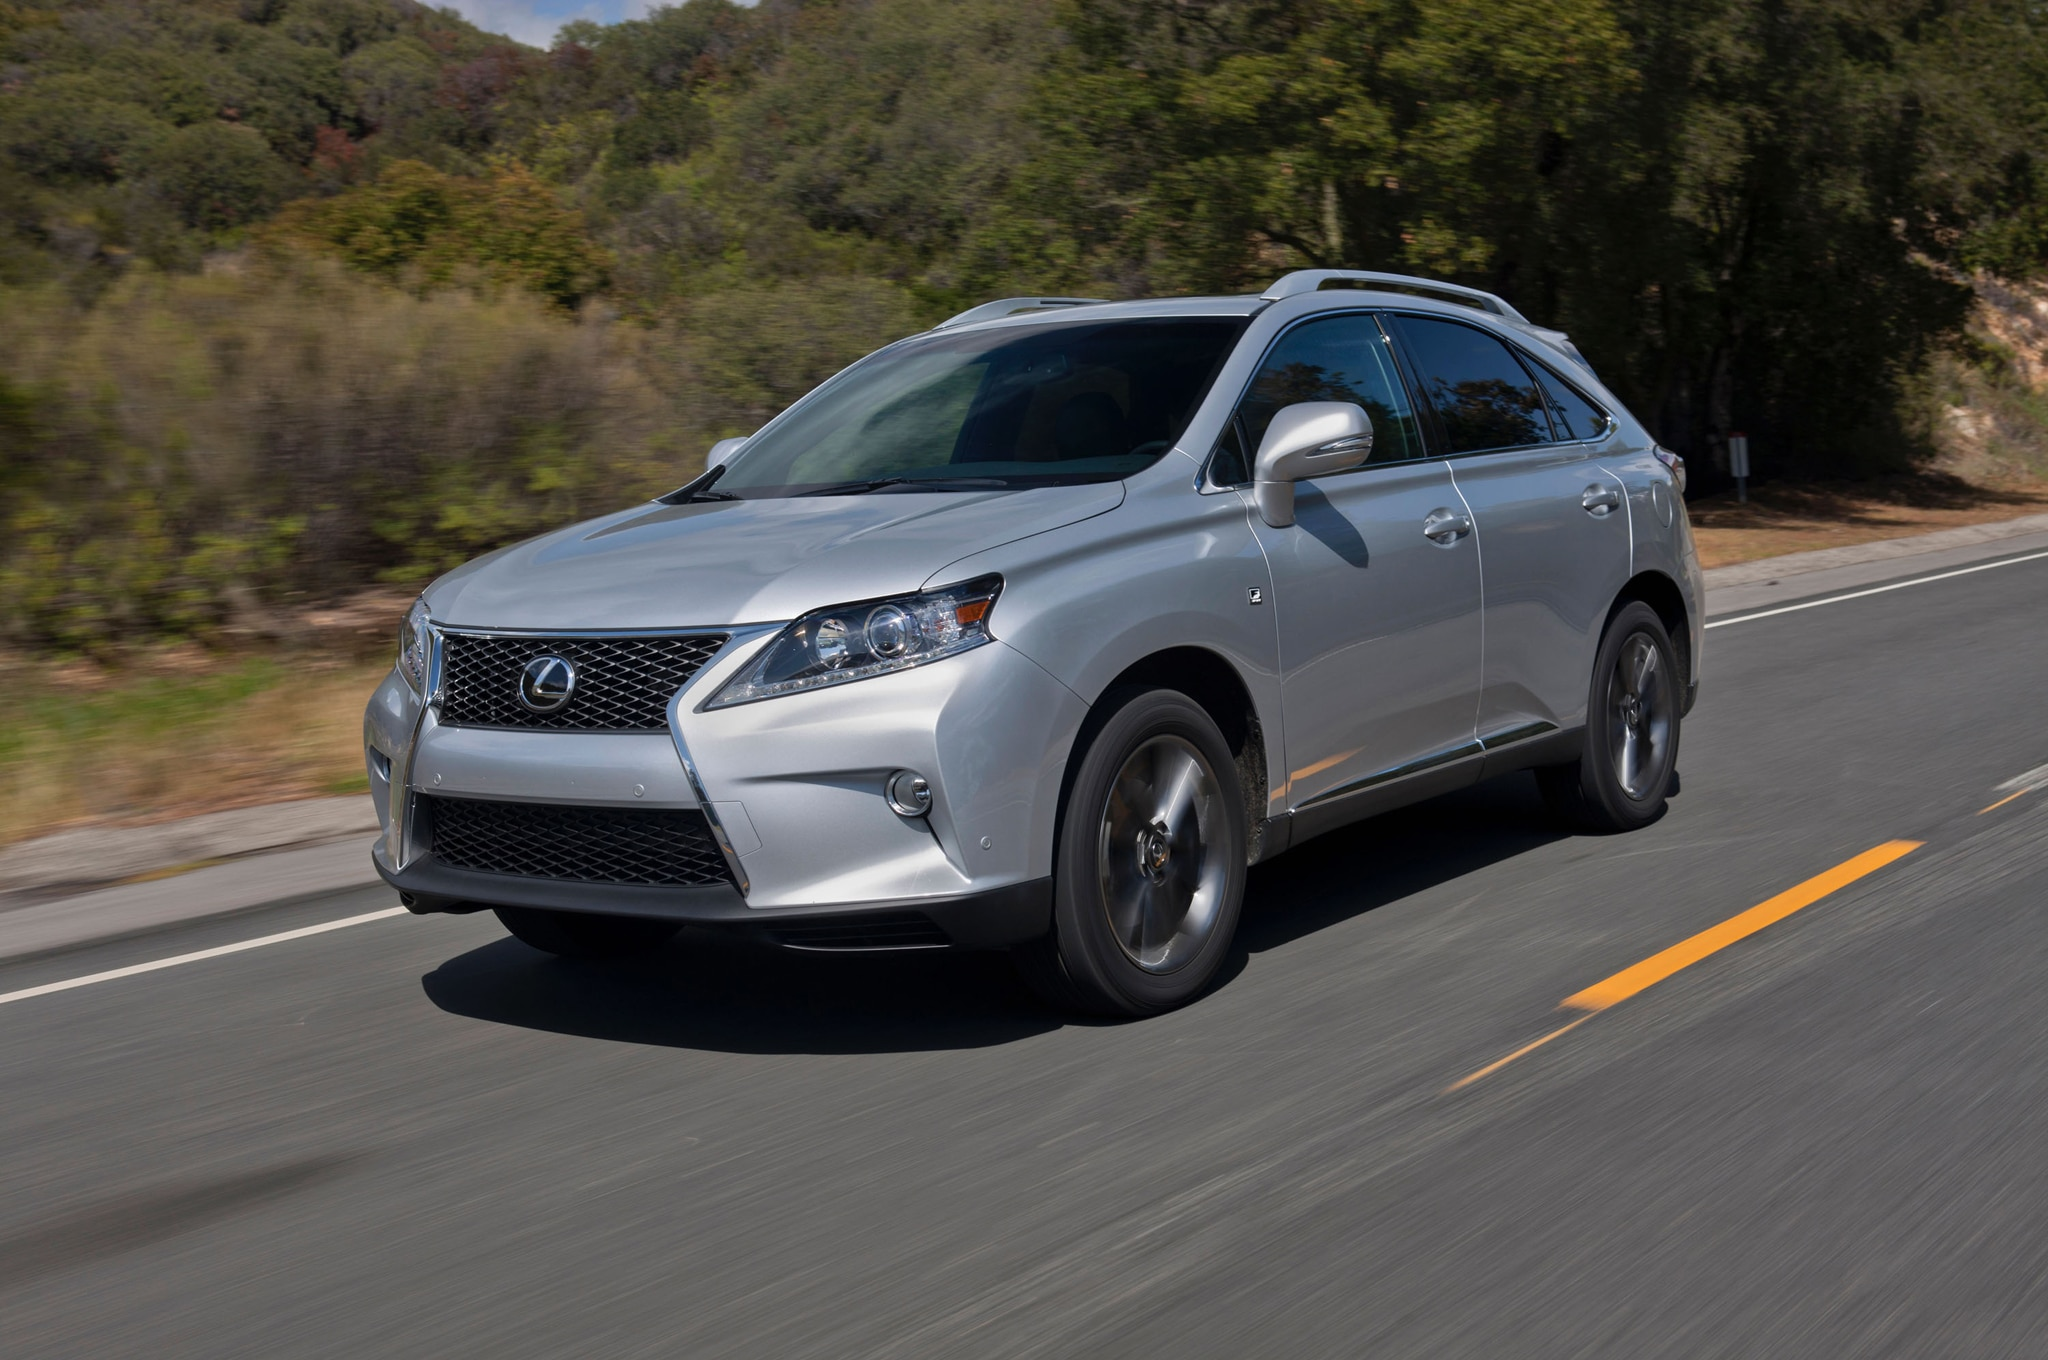 2013 lexus rx 350 f sport first drive - automobile magazine